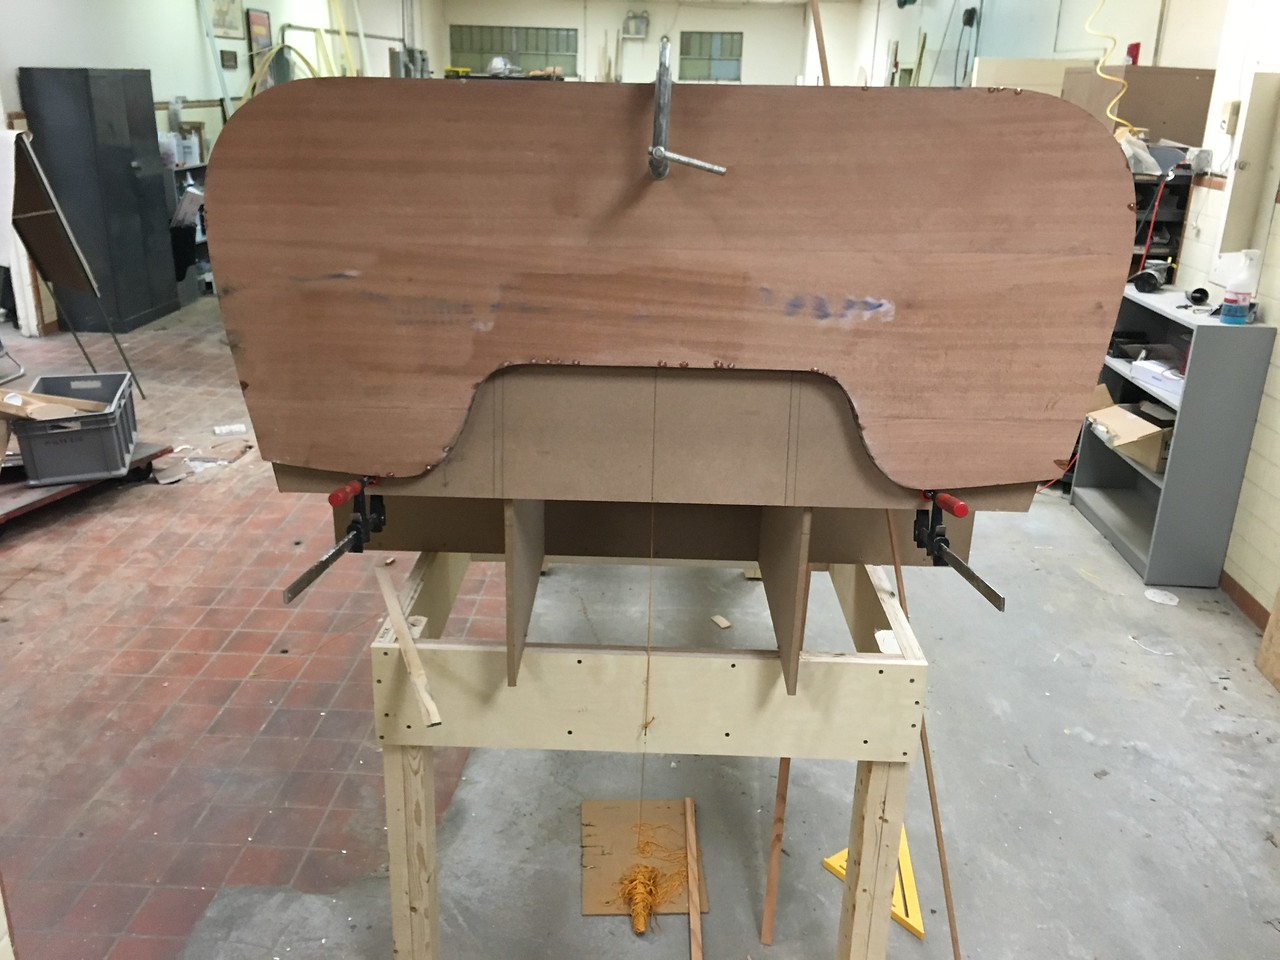 Transom attached to the Transom Jig